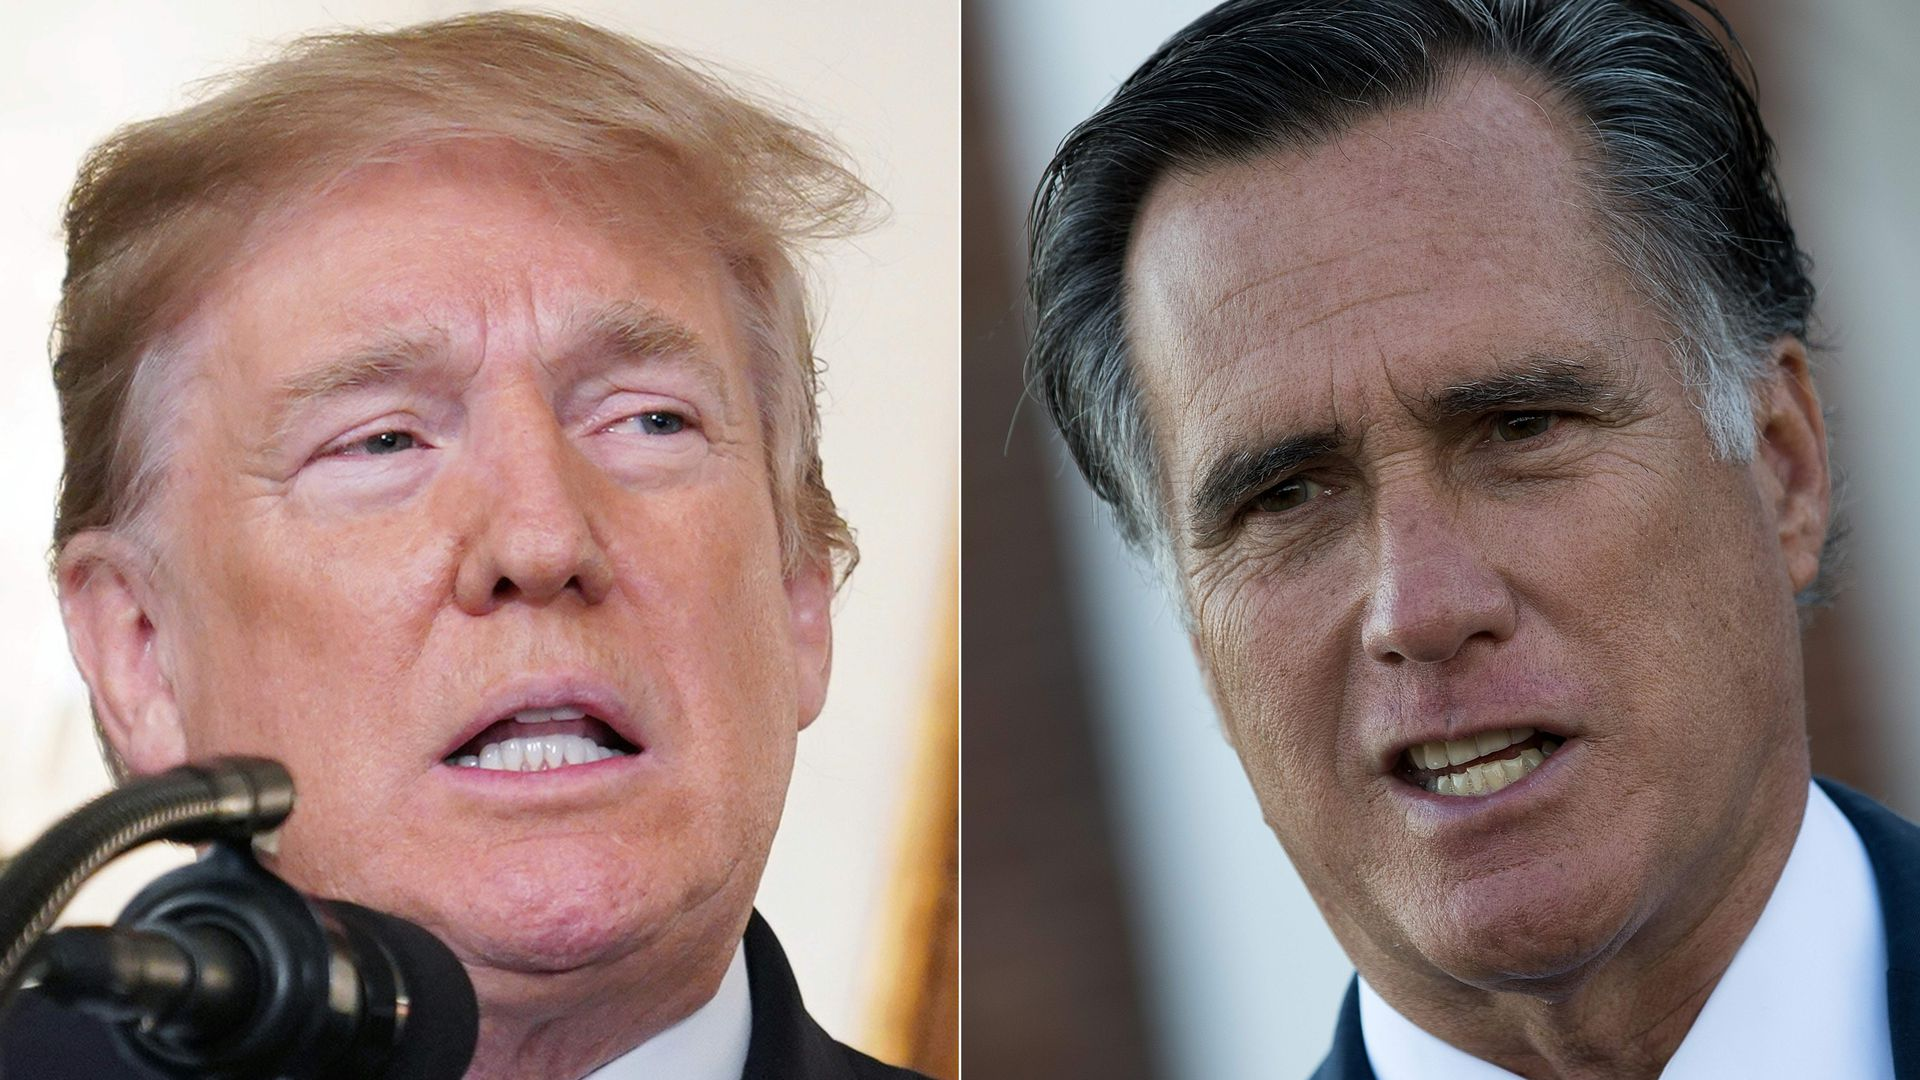 President Donald Trump and Sen. Mitt Romney